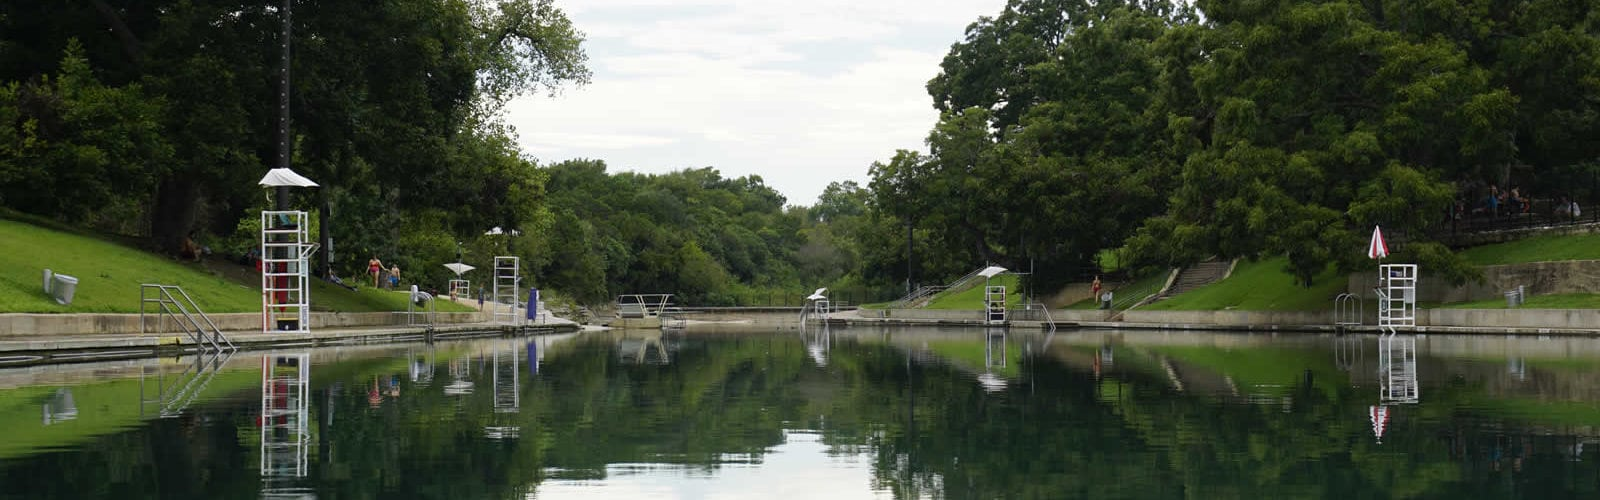 barton-springs-pool-piscine-austin-une